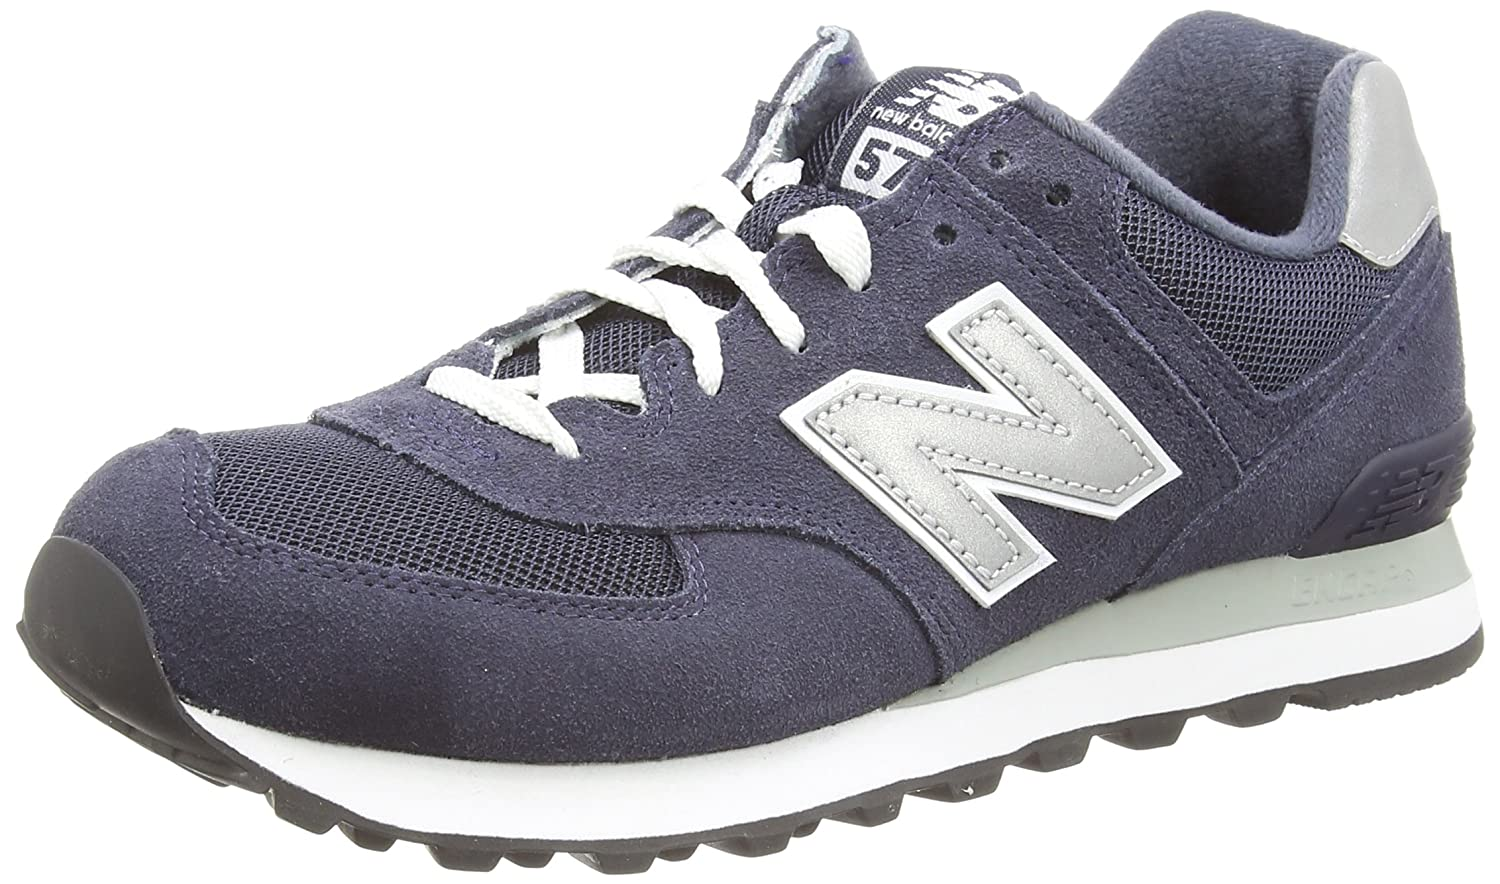 Mens New Balance 574 Suede Lace up Retro Running Classic Sneakers